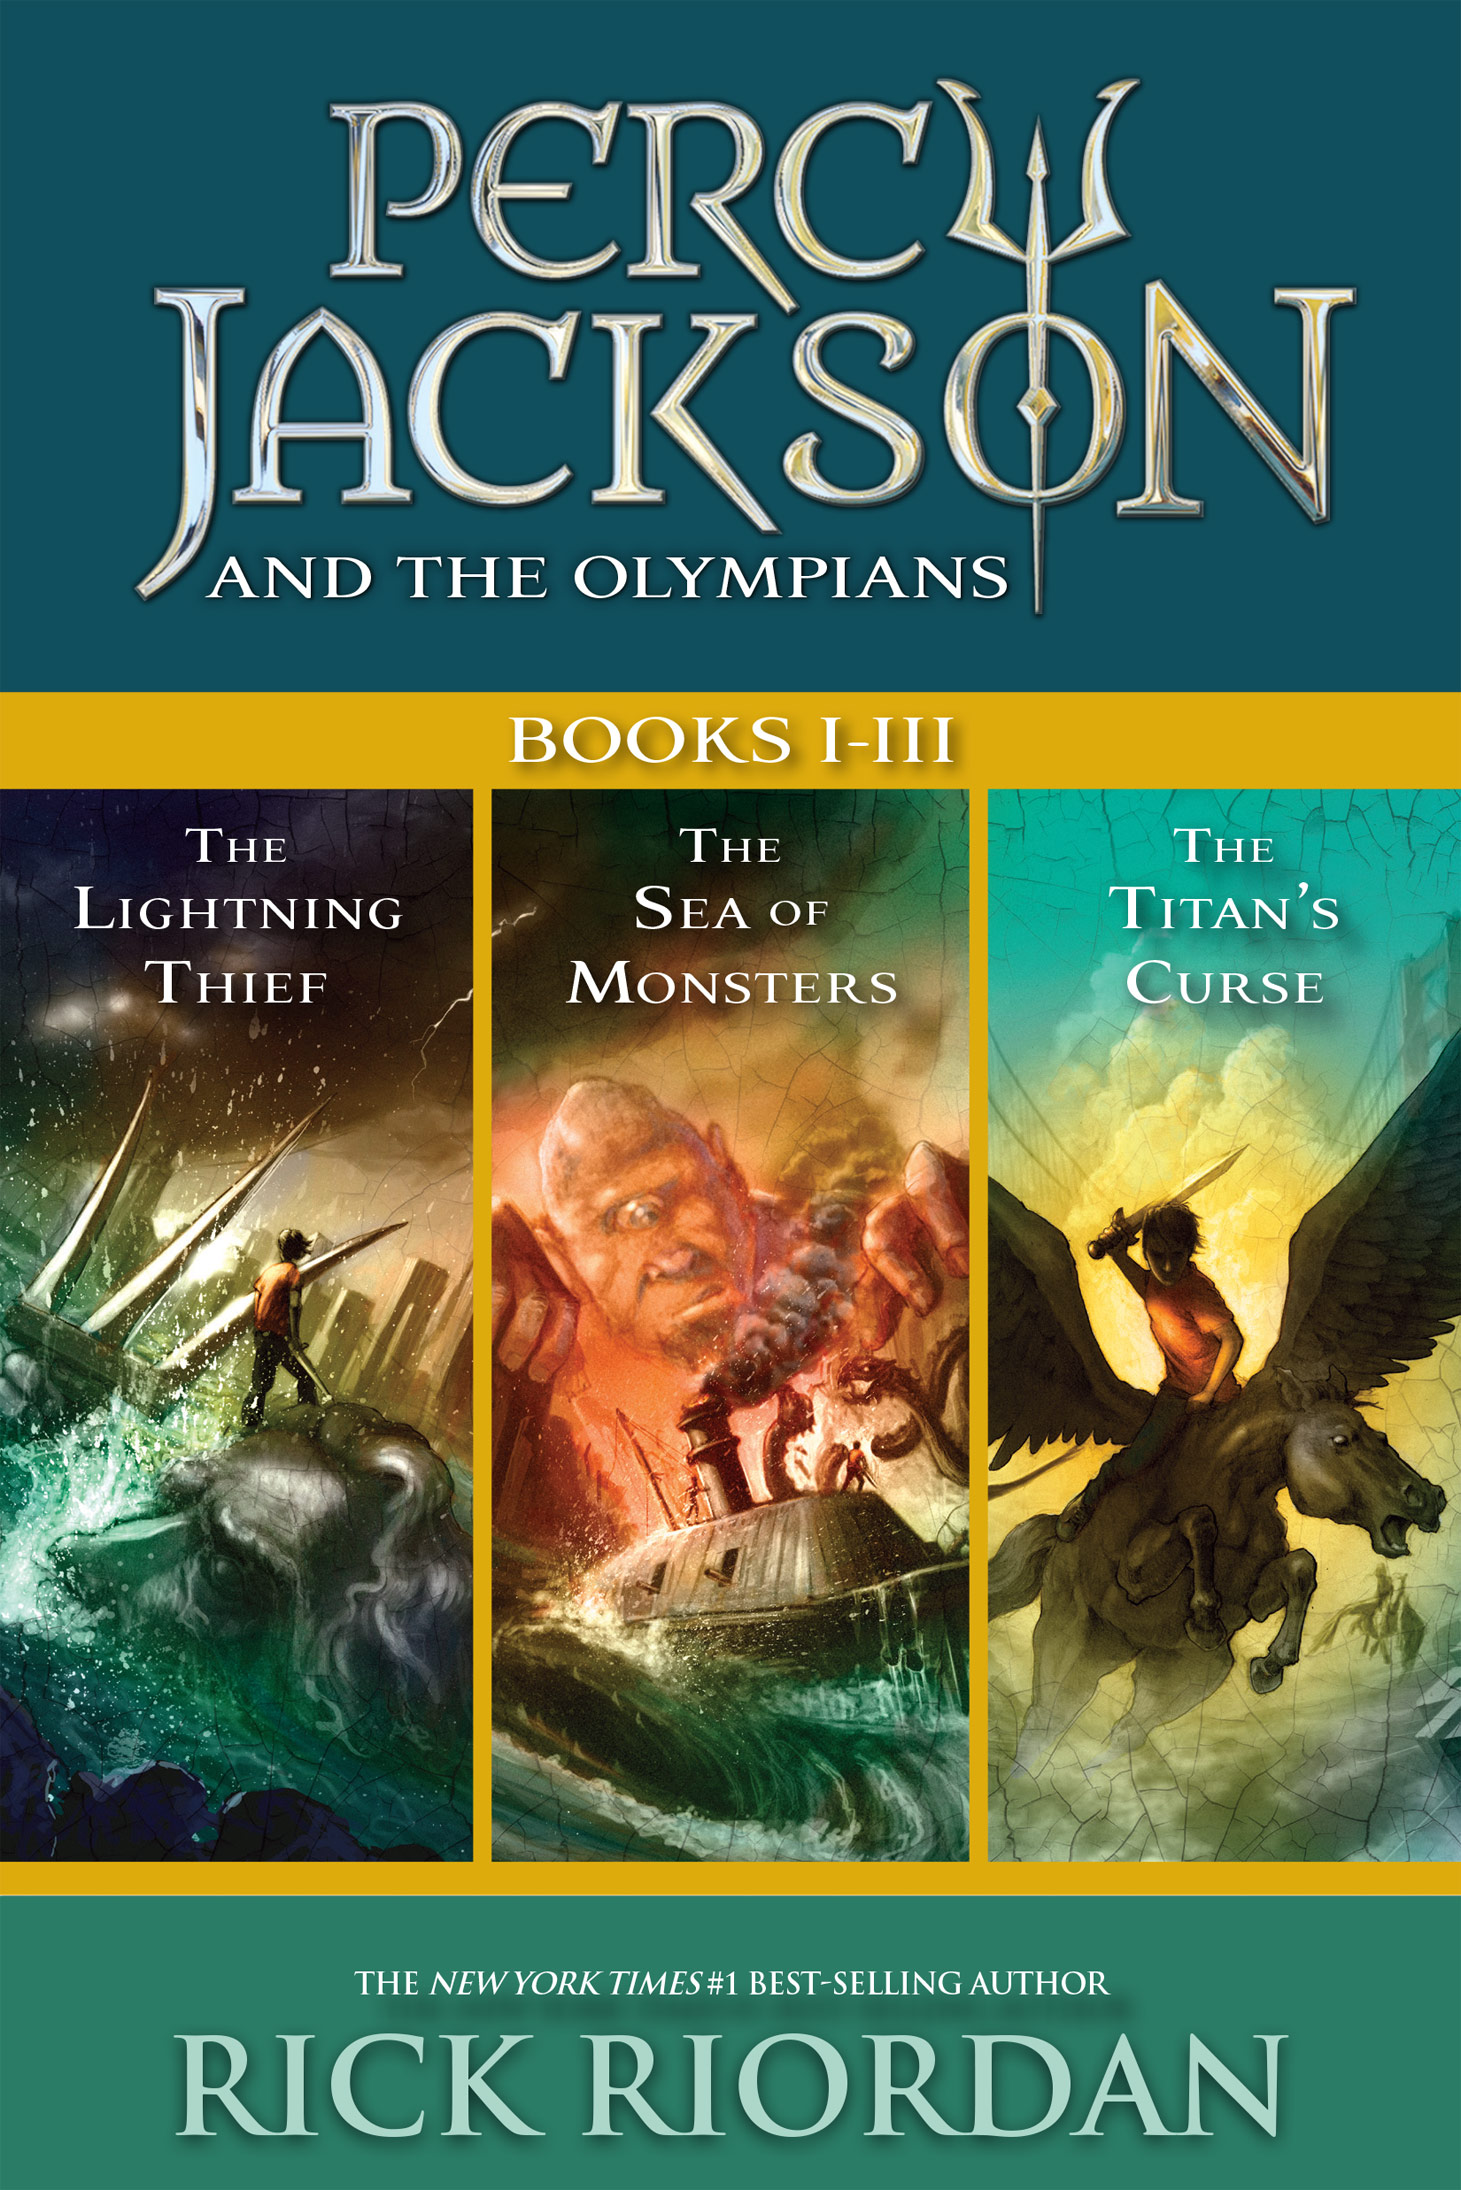 Percy Jackson and the Olympians [electronic resource (downloadable eBook)]. Books I-III : collecting the Lightning Thief, the Sea of Monsters, and the Titans' Curse